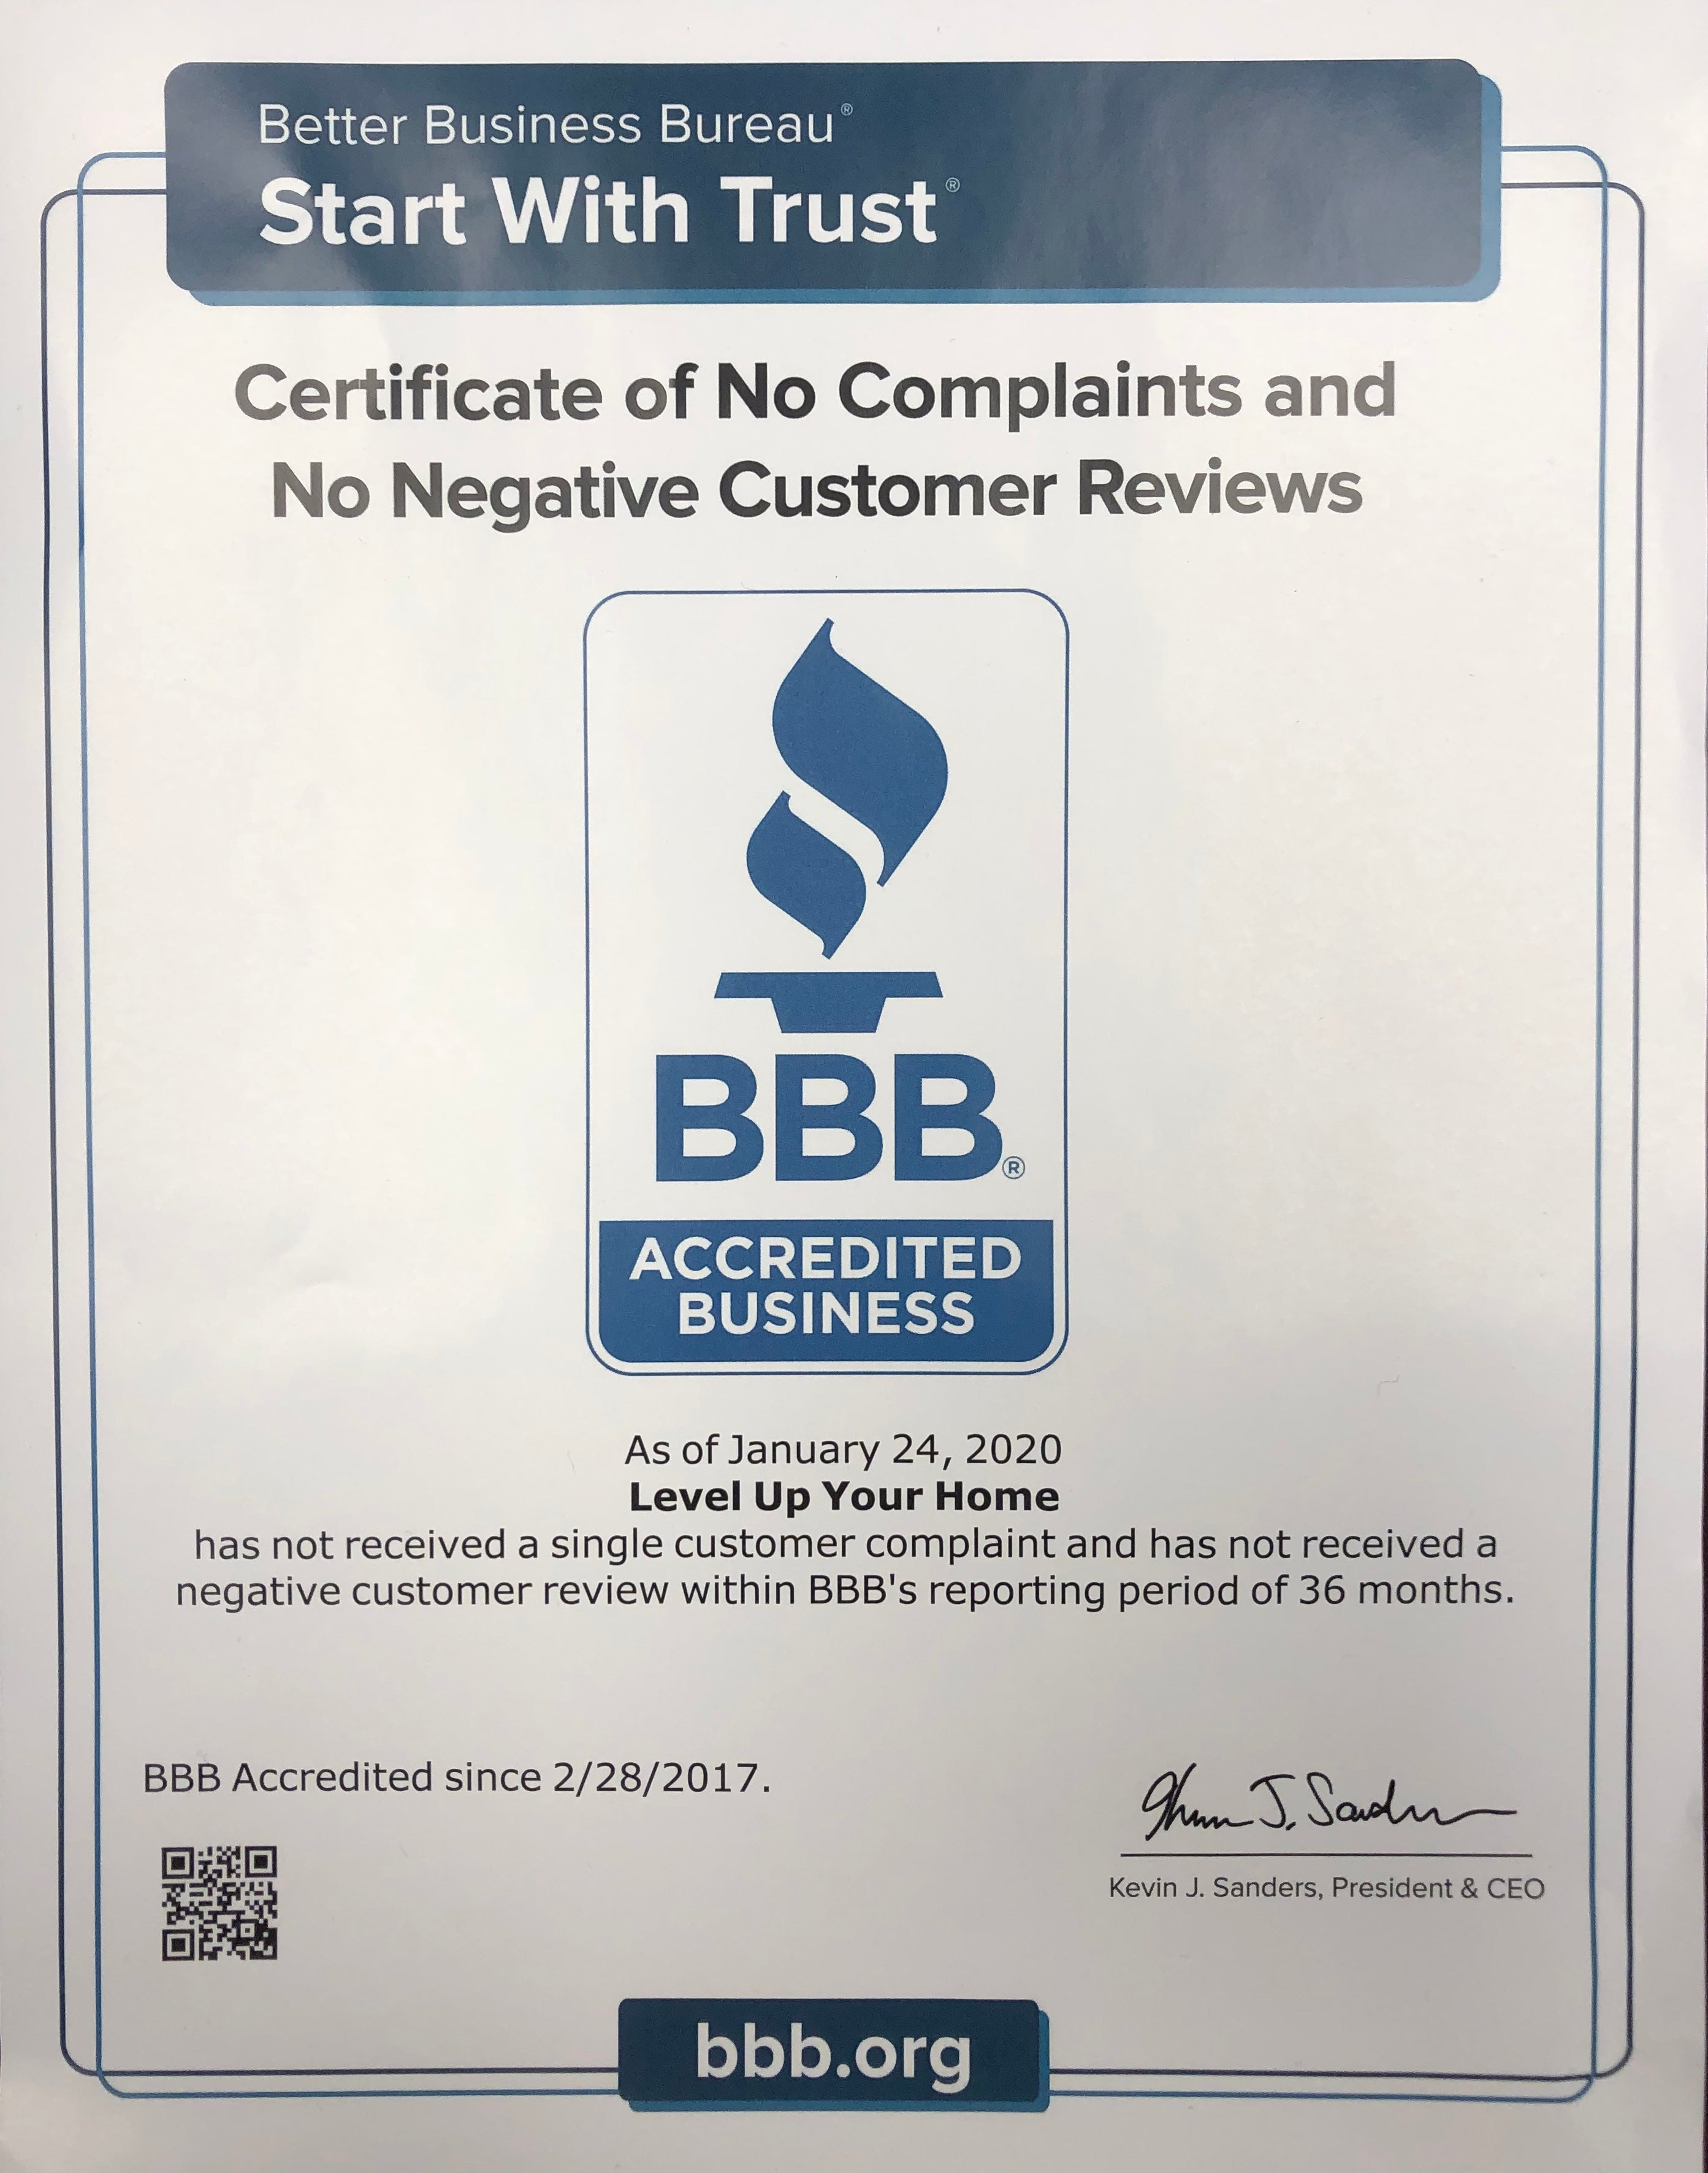 Better Business Bureau announces A+ rating for Level Up